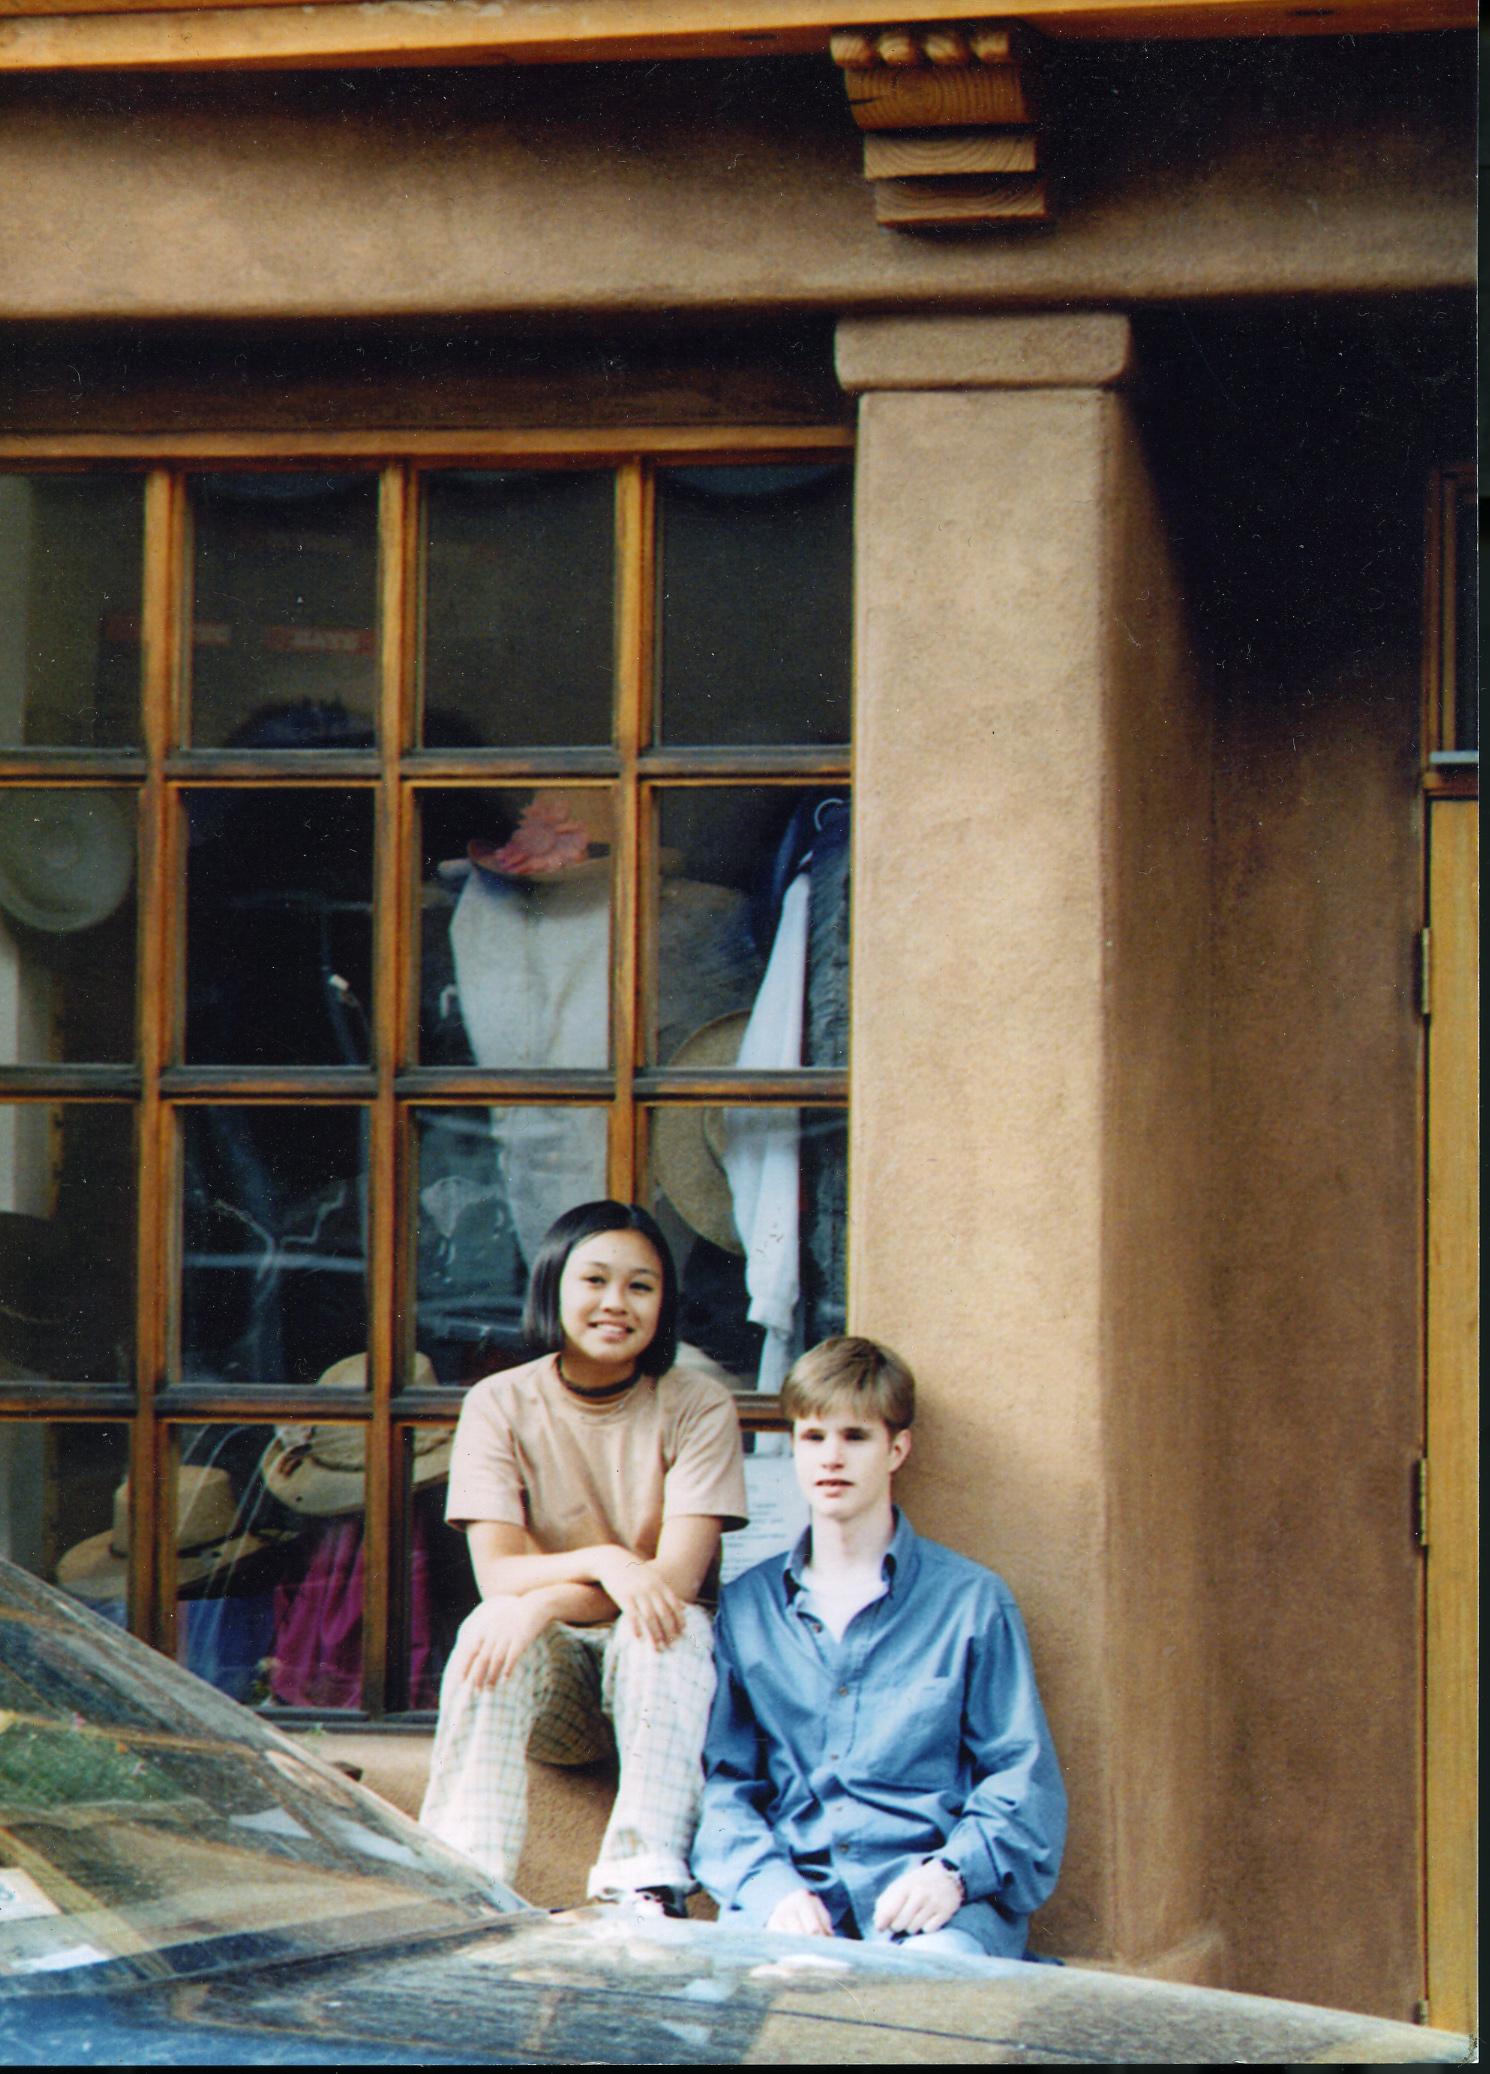 Michele Josue and Matthew Shepard, friends from high school.